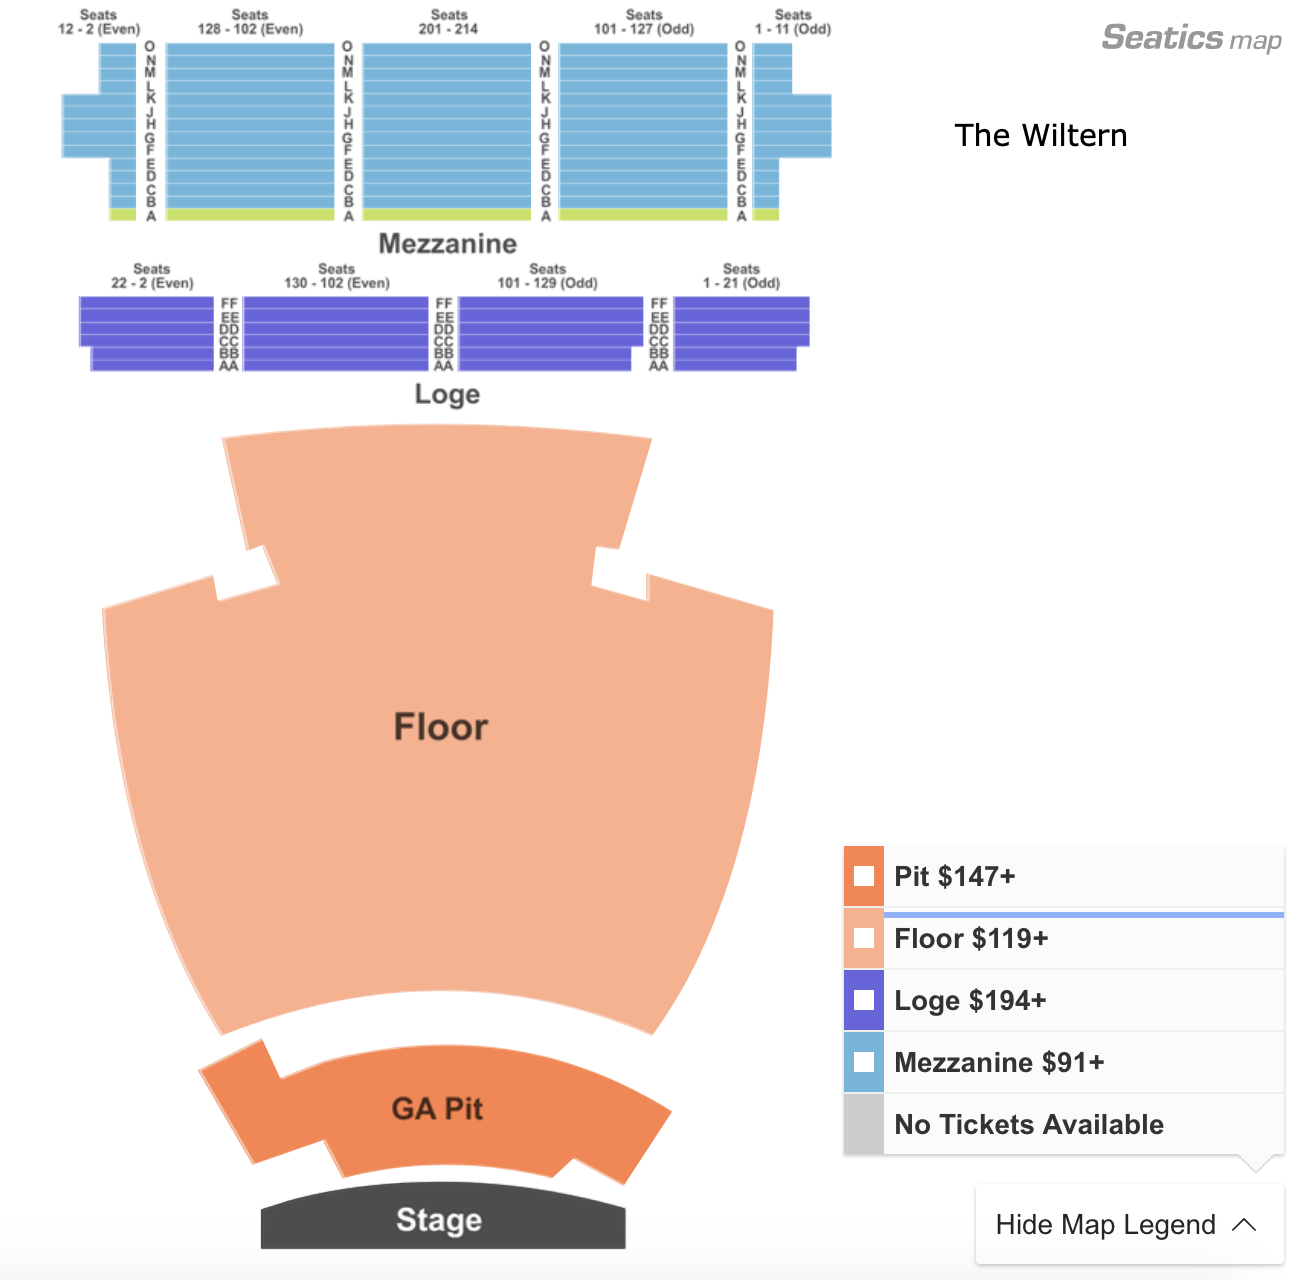 How To Find Cheapest Tickets For Snoop Dogg 2020 Tour + Face Value Options